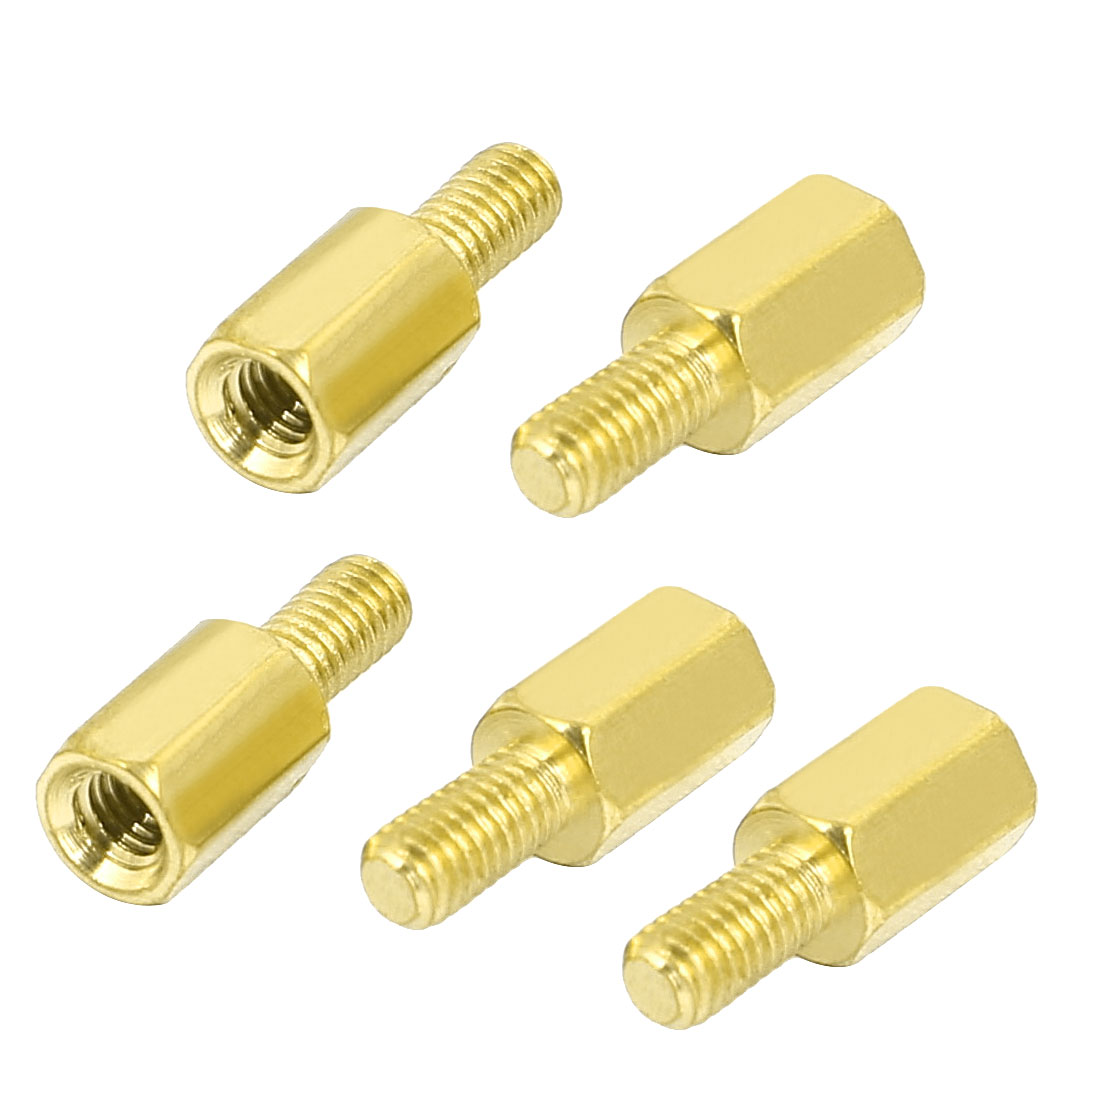 M3 Male to Female Thread Brass Hexagonal PCB Spacer Standoff Support 7mm+6mm 5pcs